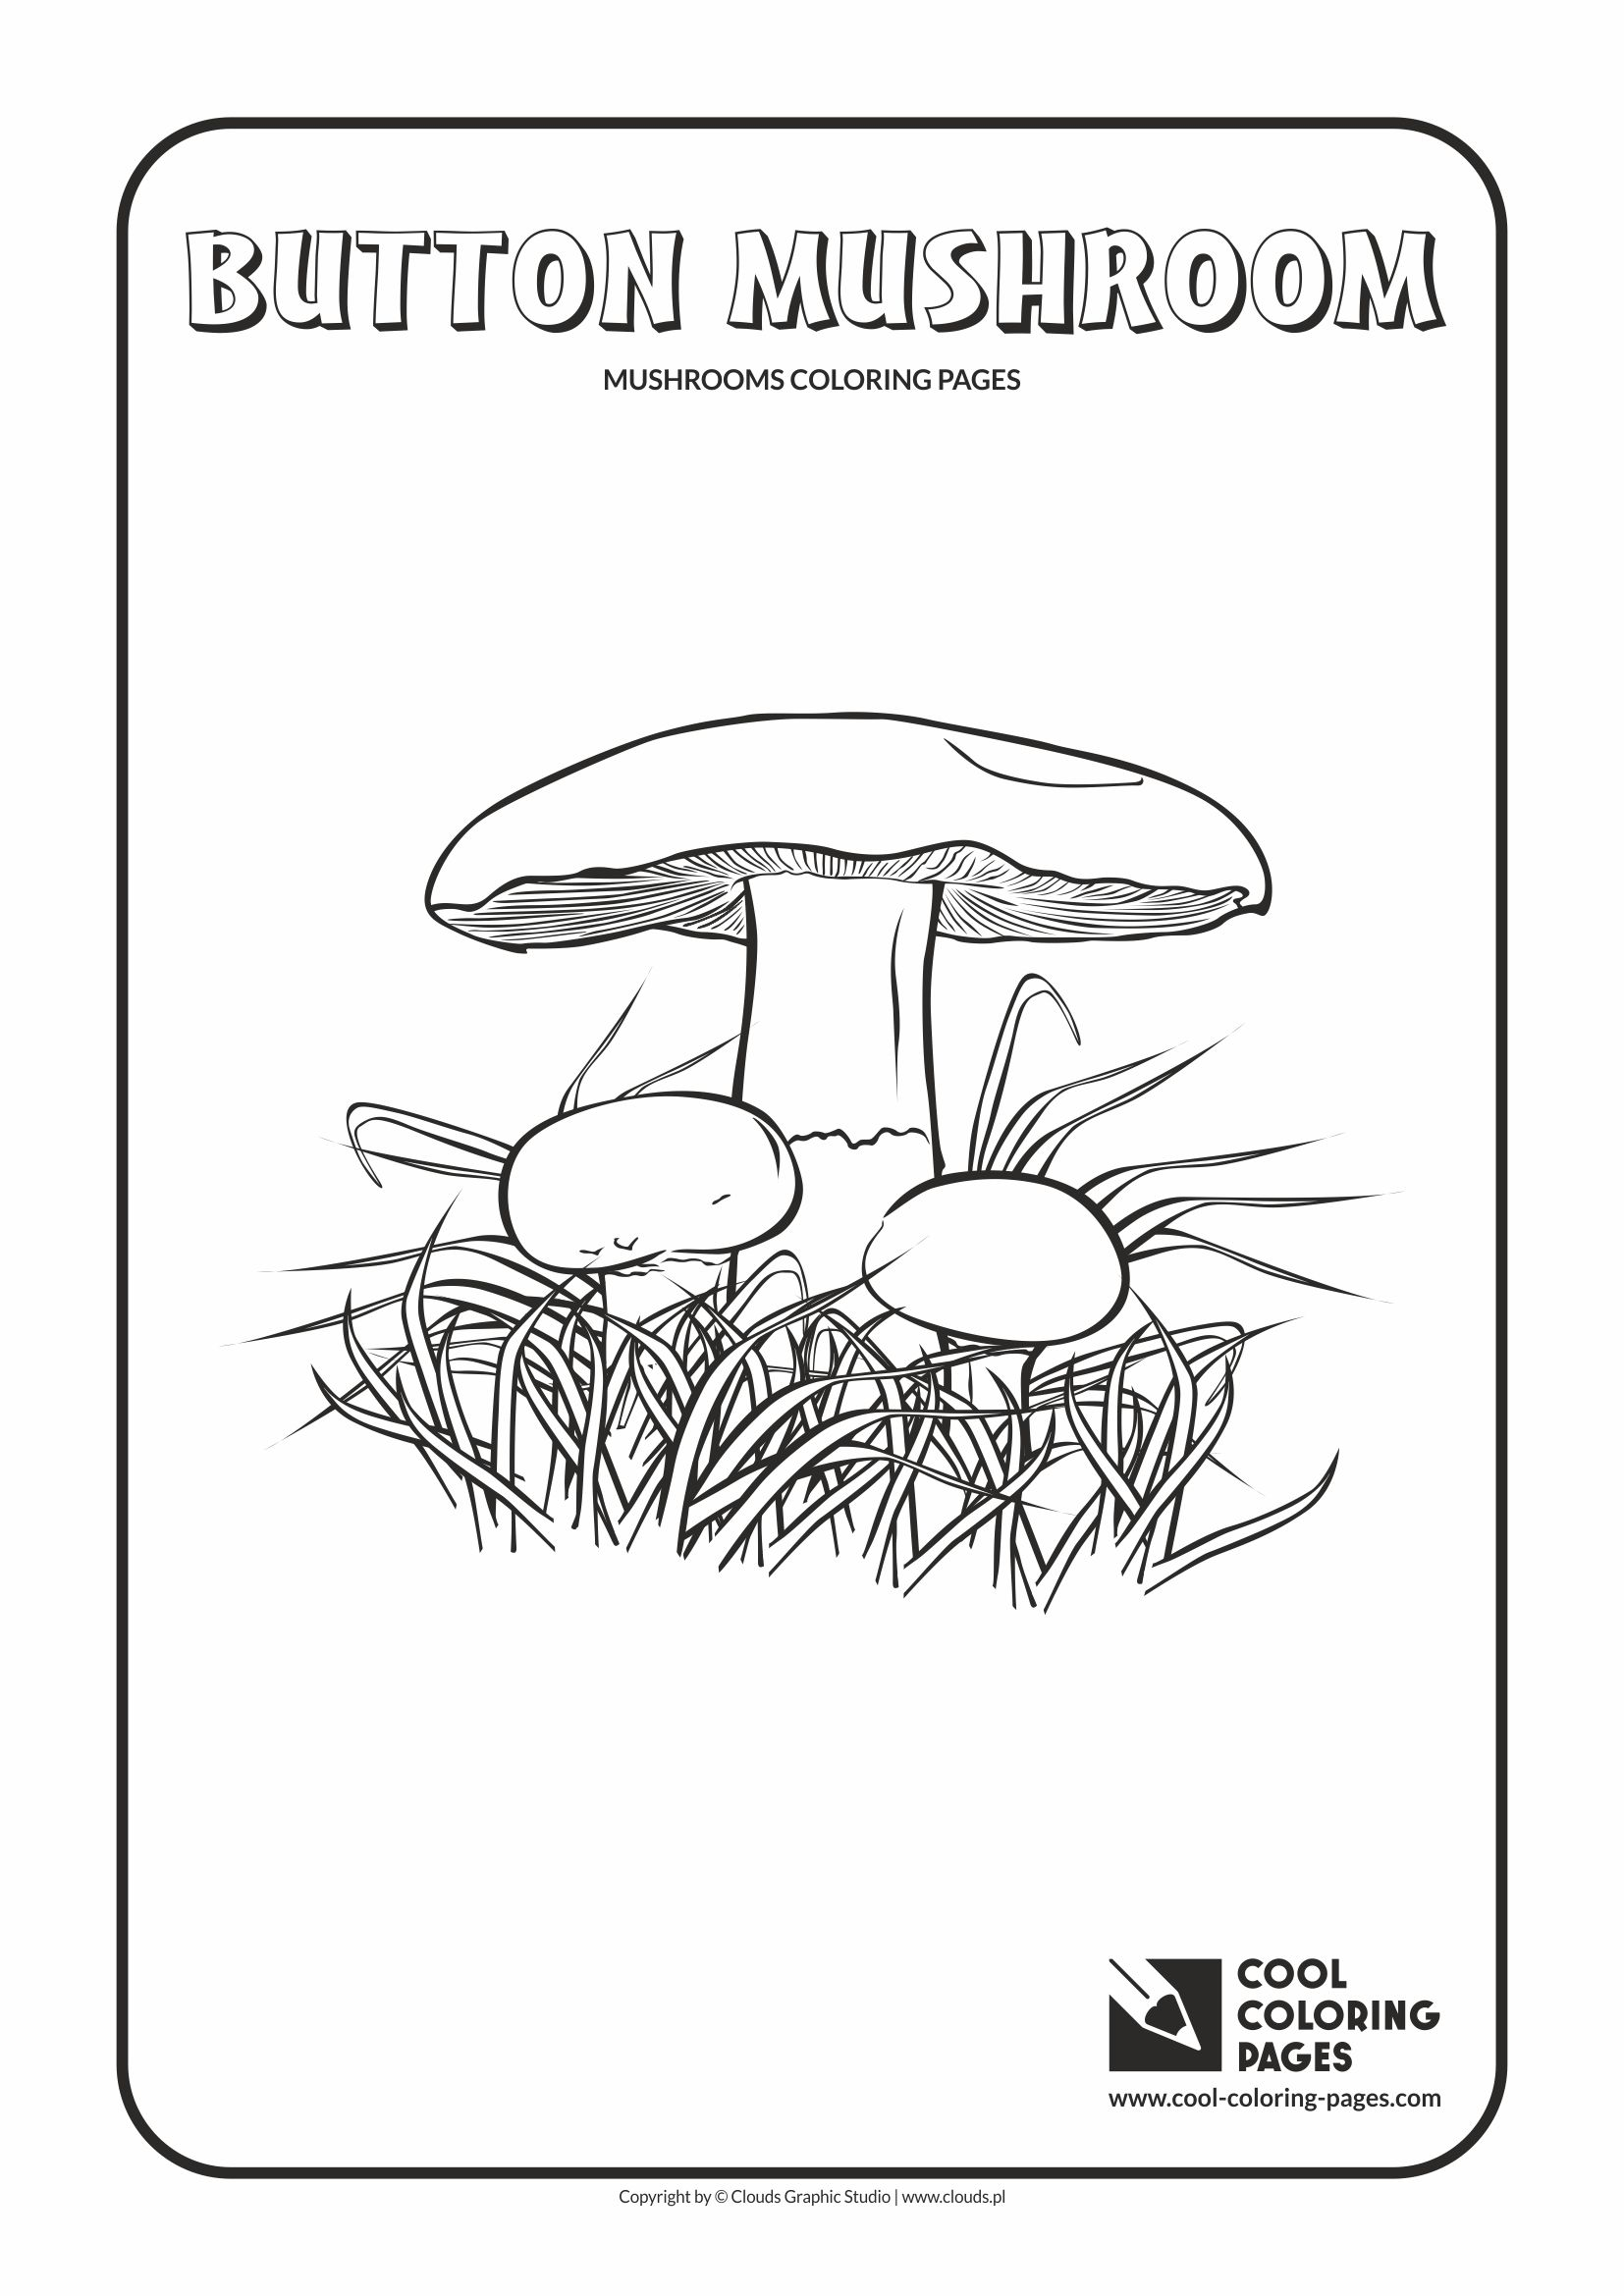 Cool Coloring Pages - Mushrooms / Button mushroom / Coloring page with button mushroom